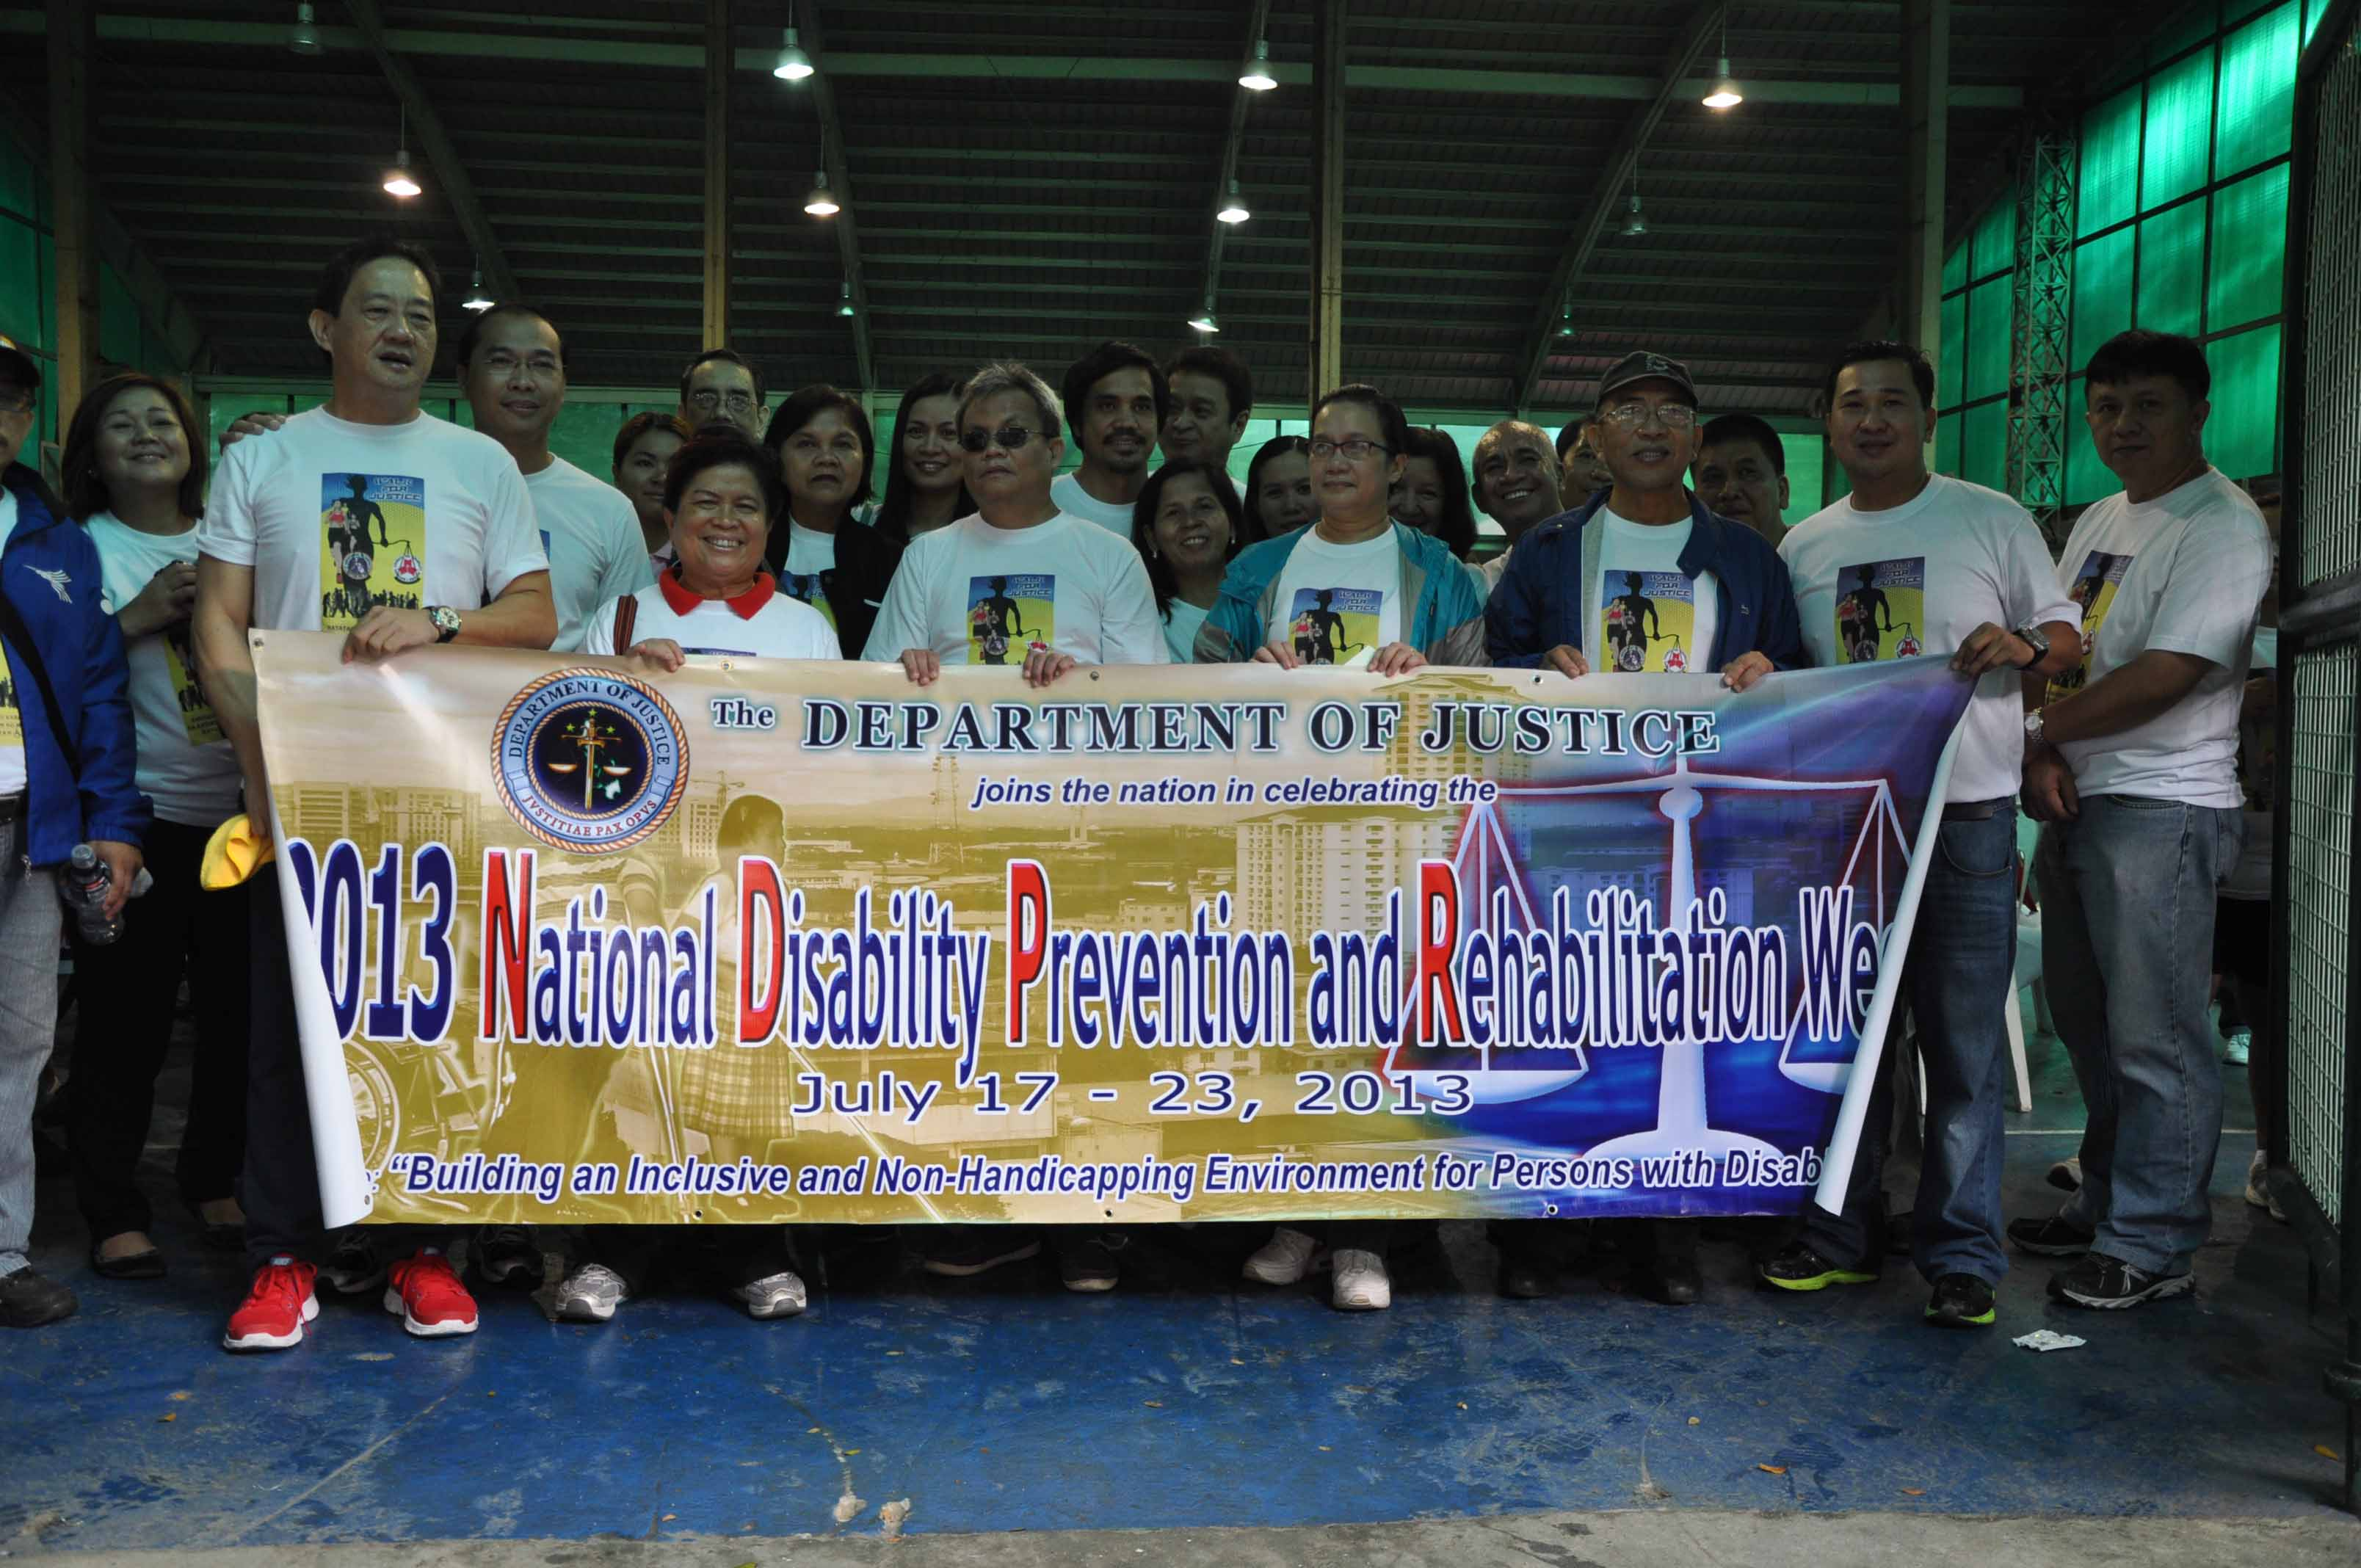 Sec. Corazon Juliano Soliman supported the celebration of the 35th NDPR Week which was chaired by DOJ Sec. Leila de Lima.